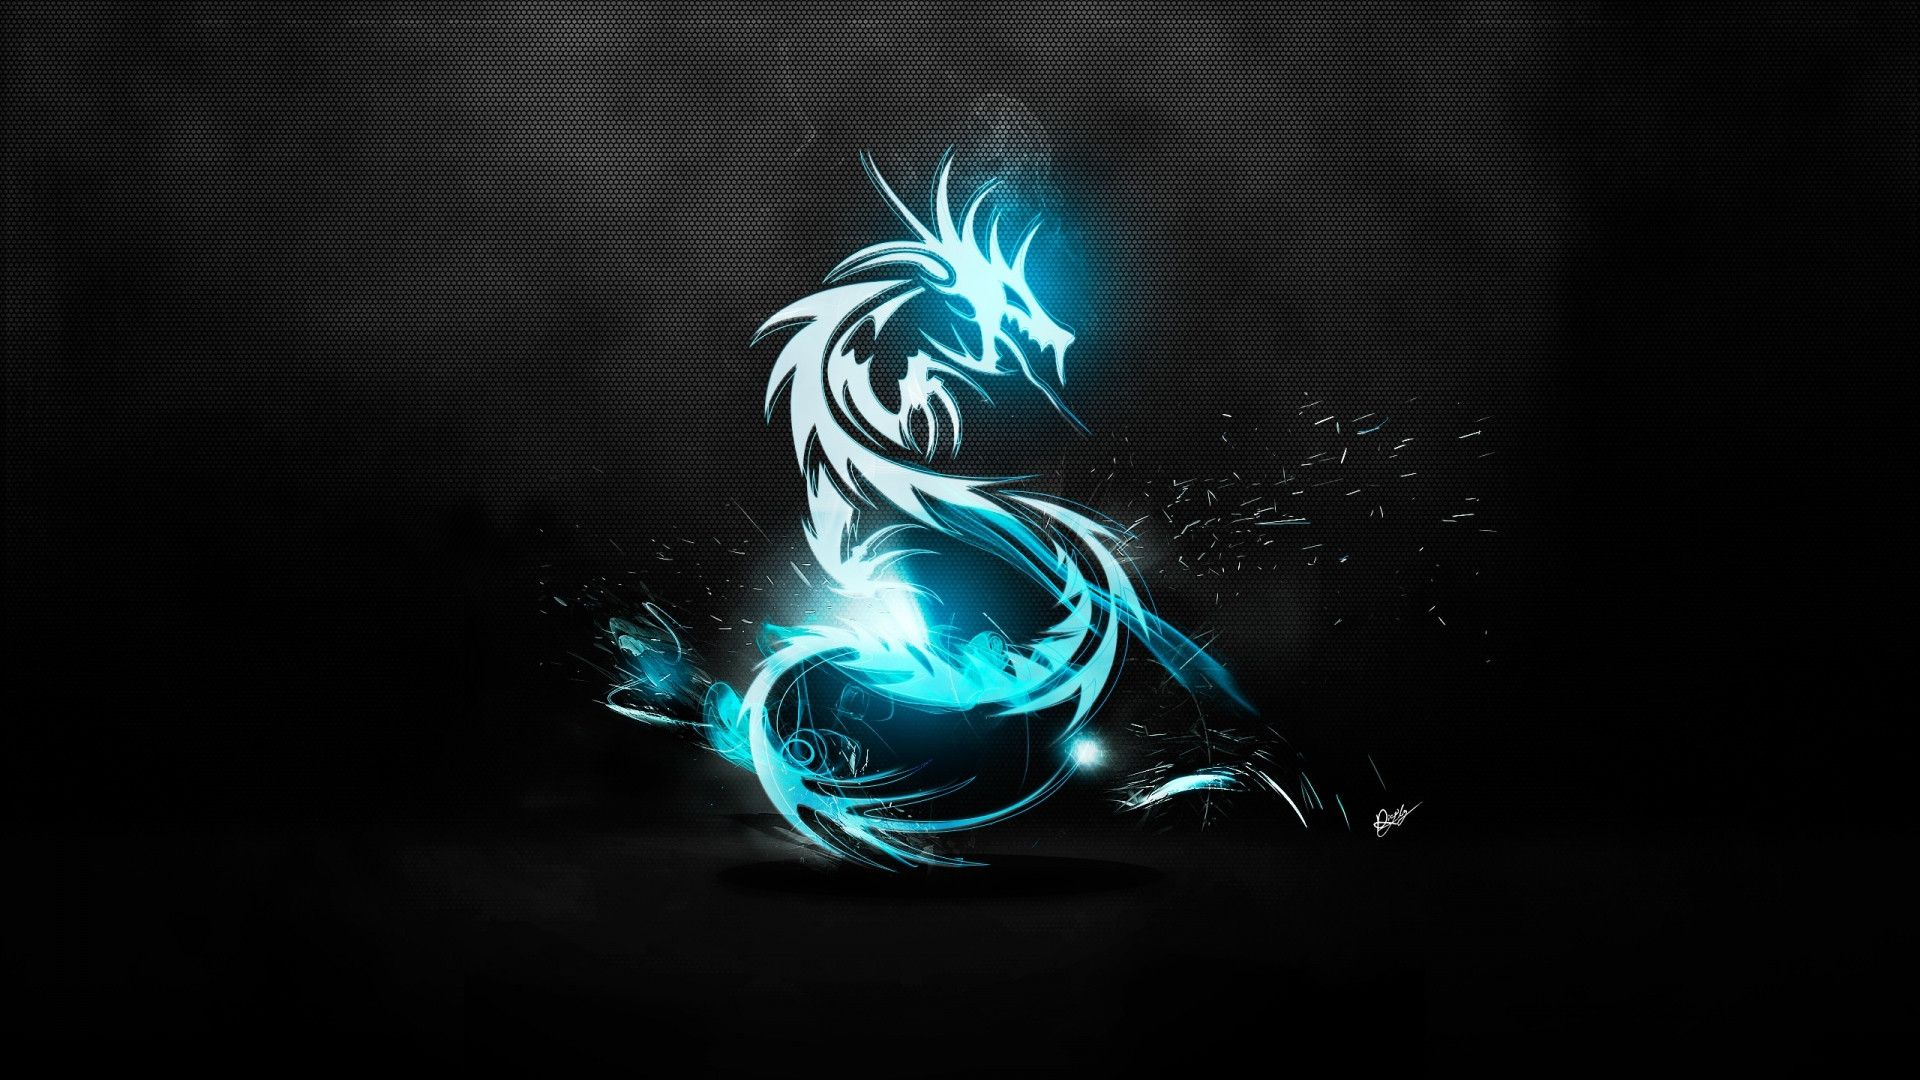 Amazing-Dragon-1920-X-1080-Need-iPhone-S-Plus-Background-for-IPhoneSP-wallpaper-wp3602393